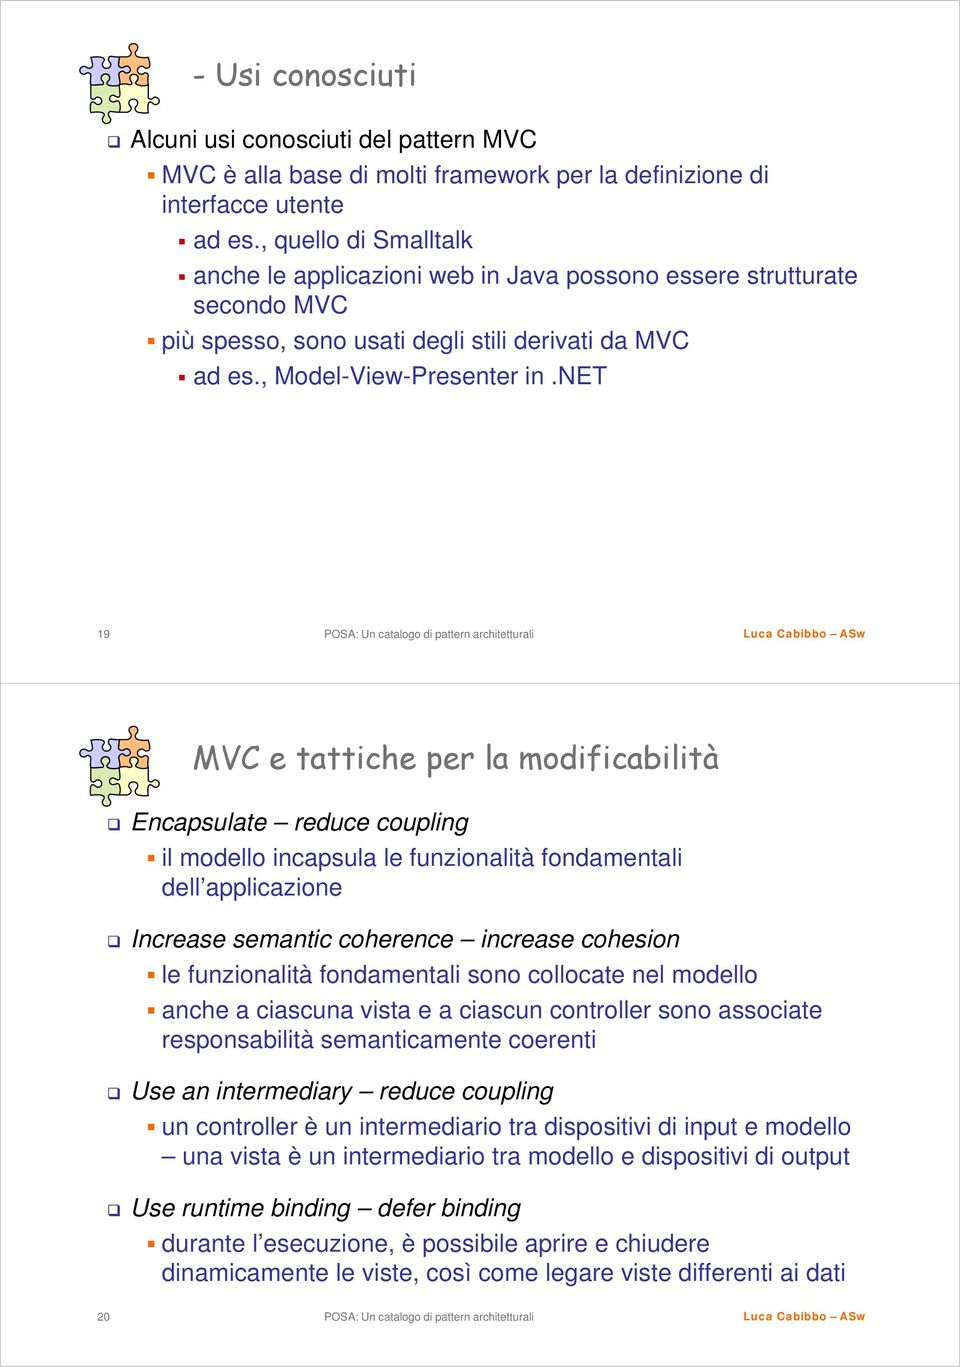 net 19 MVC e tattiche per la modificabilità Encapsulate reduce coupling il modello incapsula le funzionalità fondamentali dell applicazione Increase semantic coherence increase cohesion le